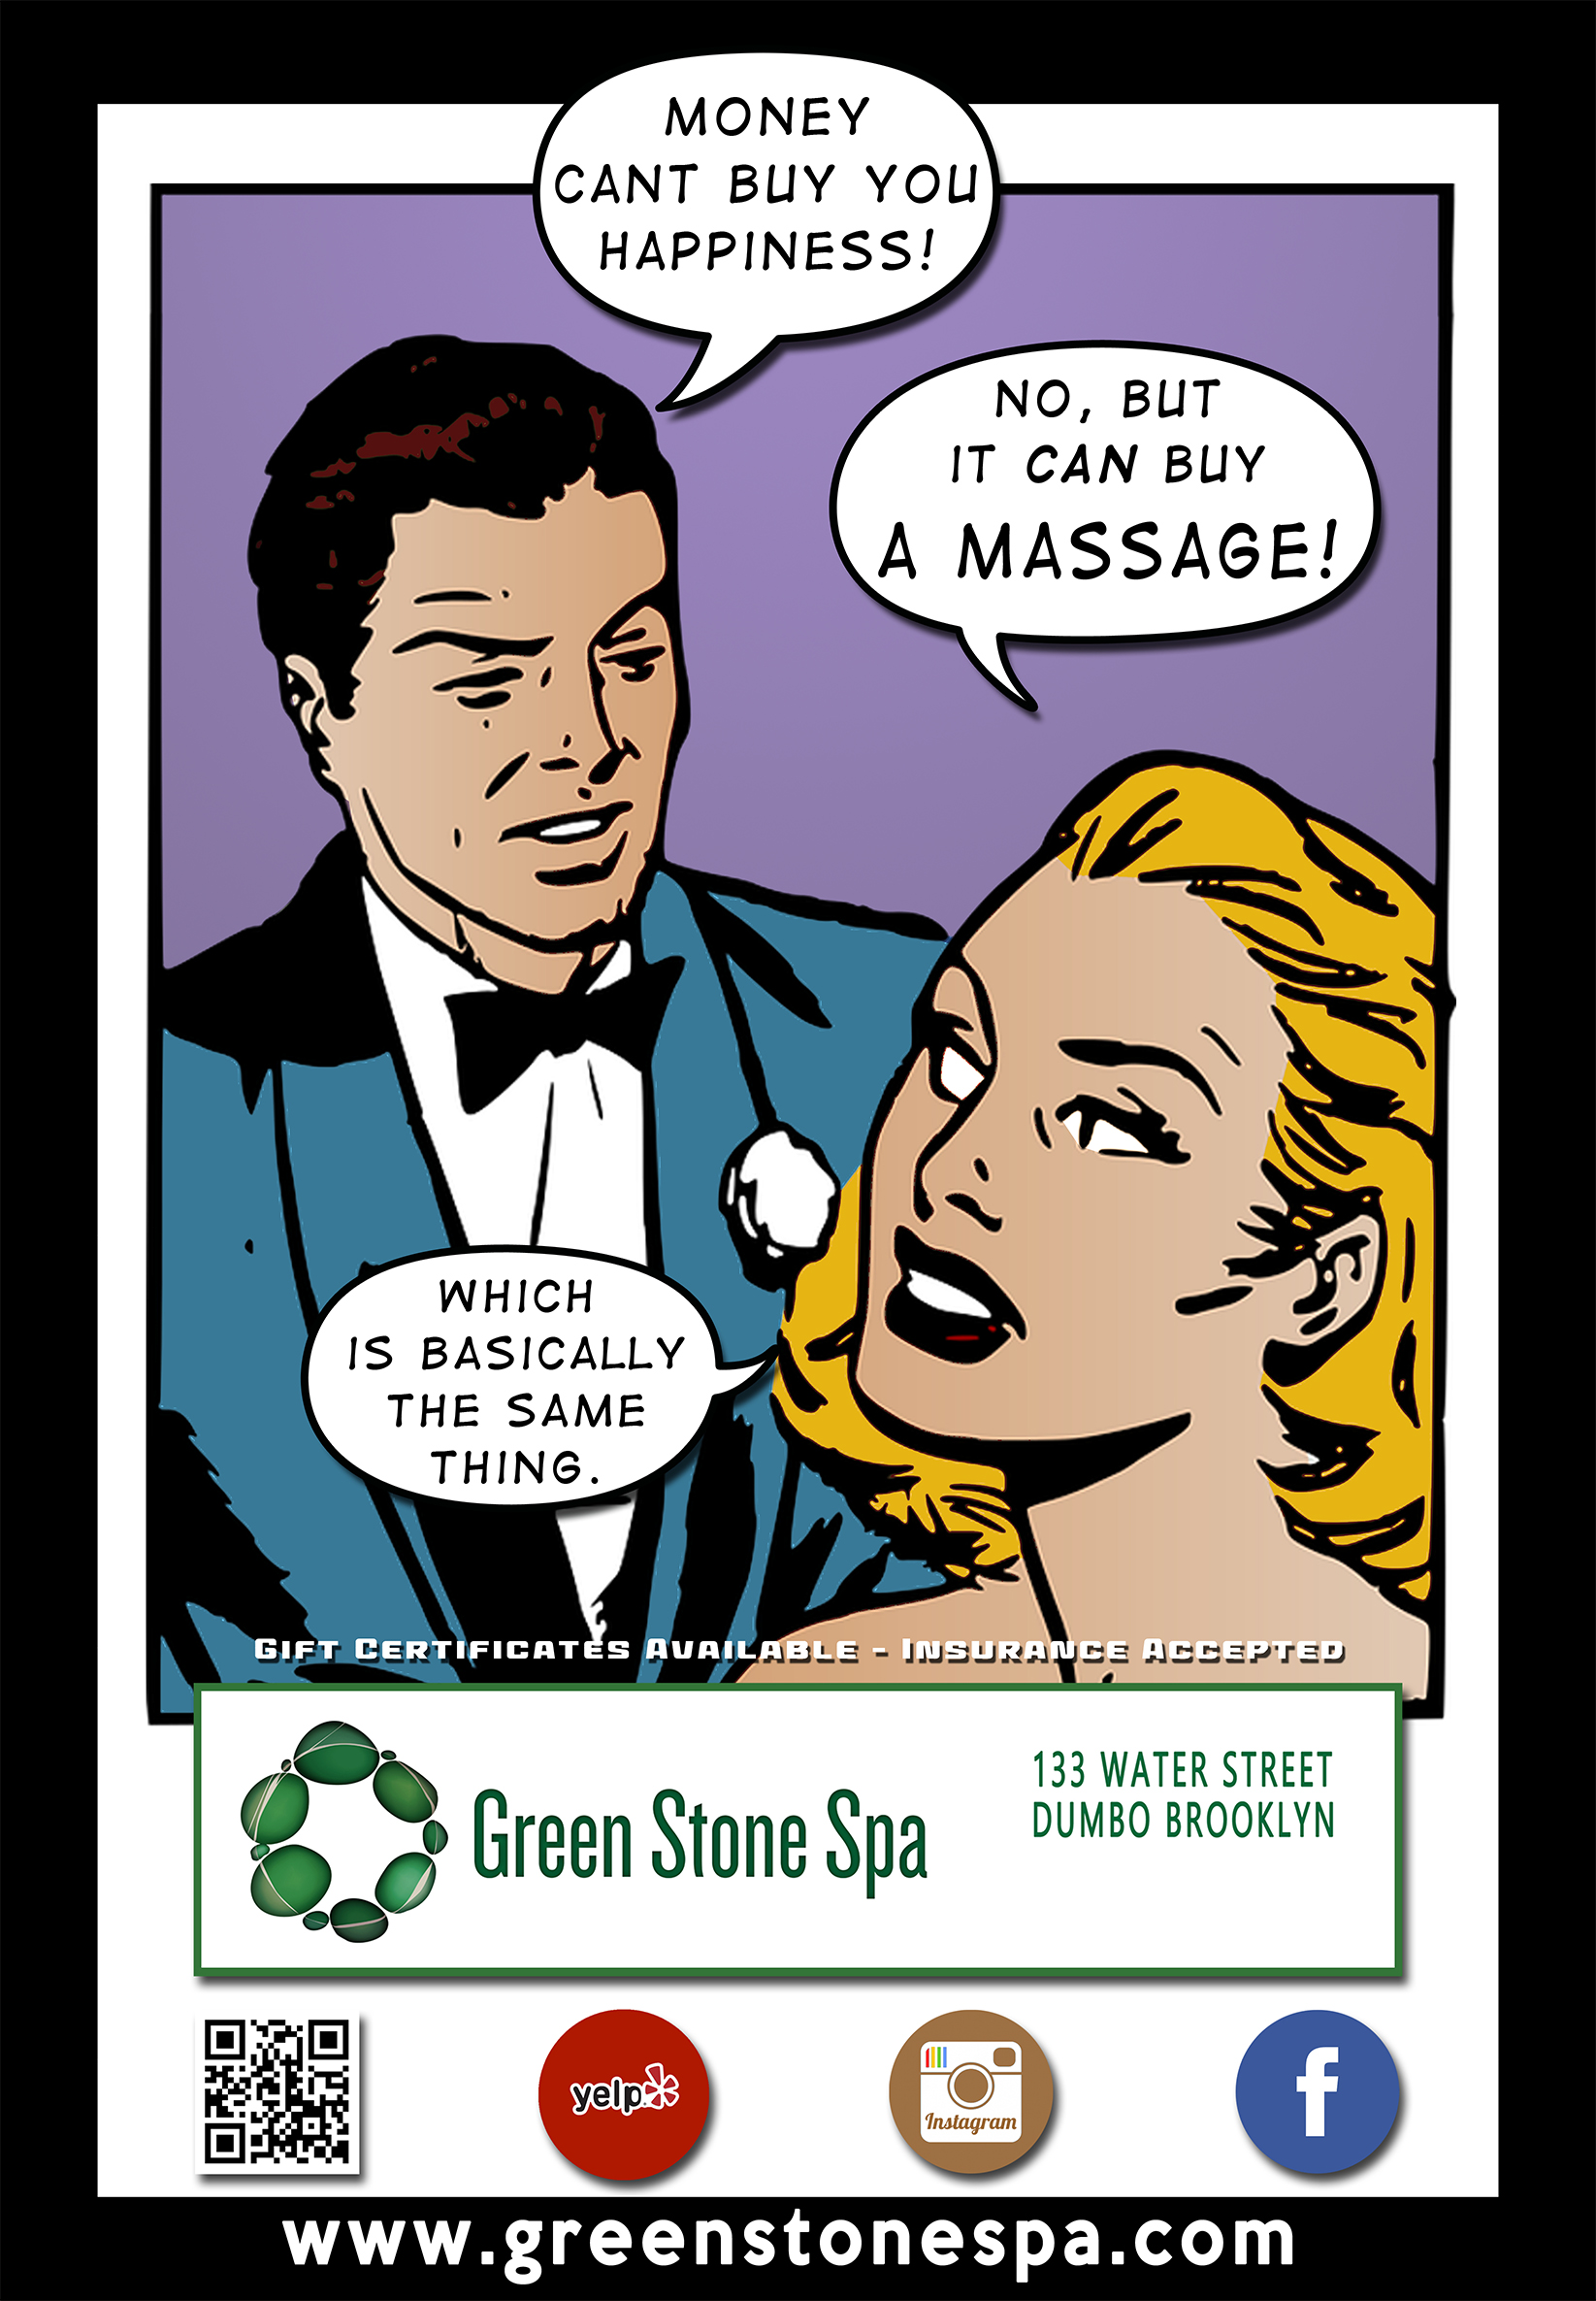 Street Sign Poster for Green Stone Spa in Dumbo Brooklyn